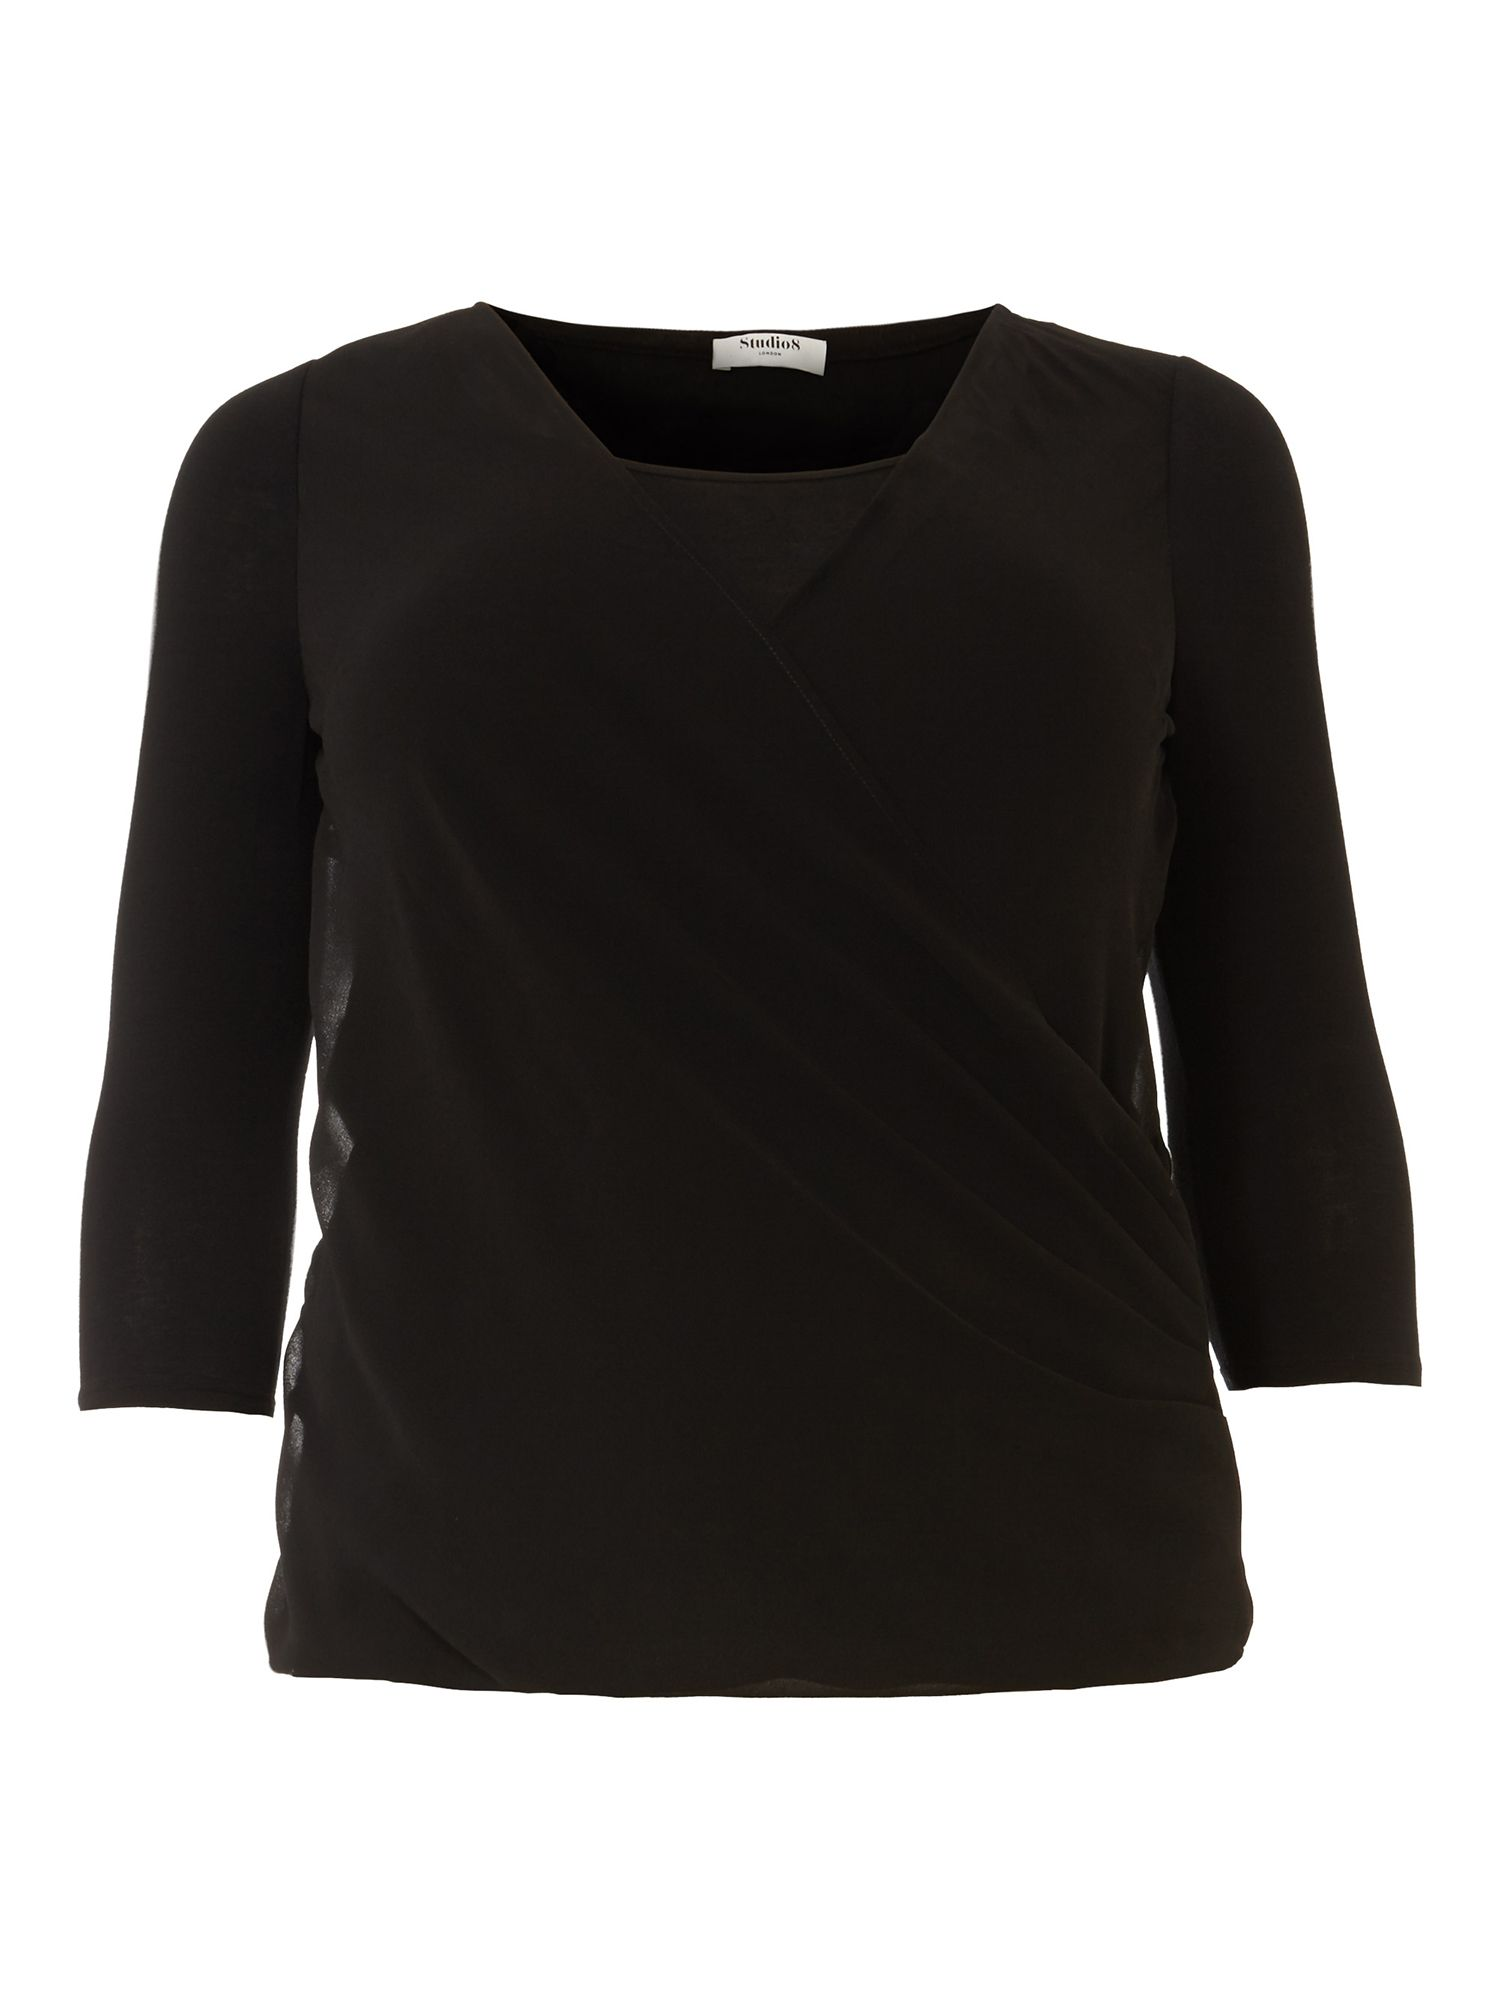 Studio 8 Ashley Top, Black